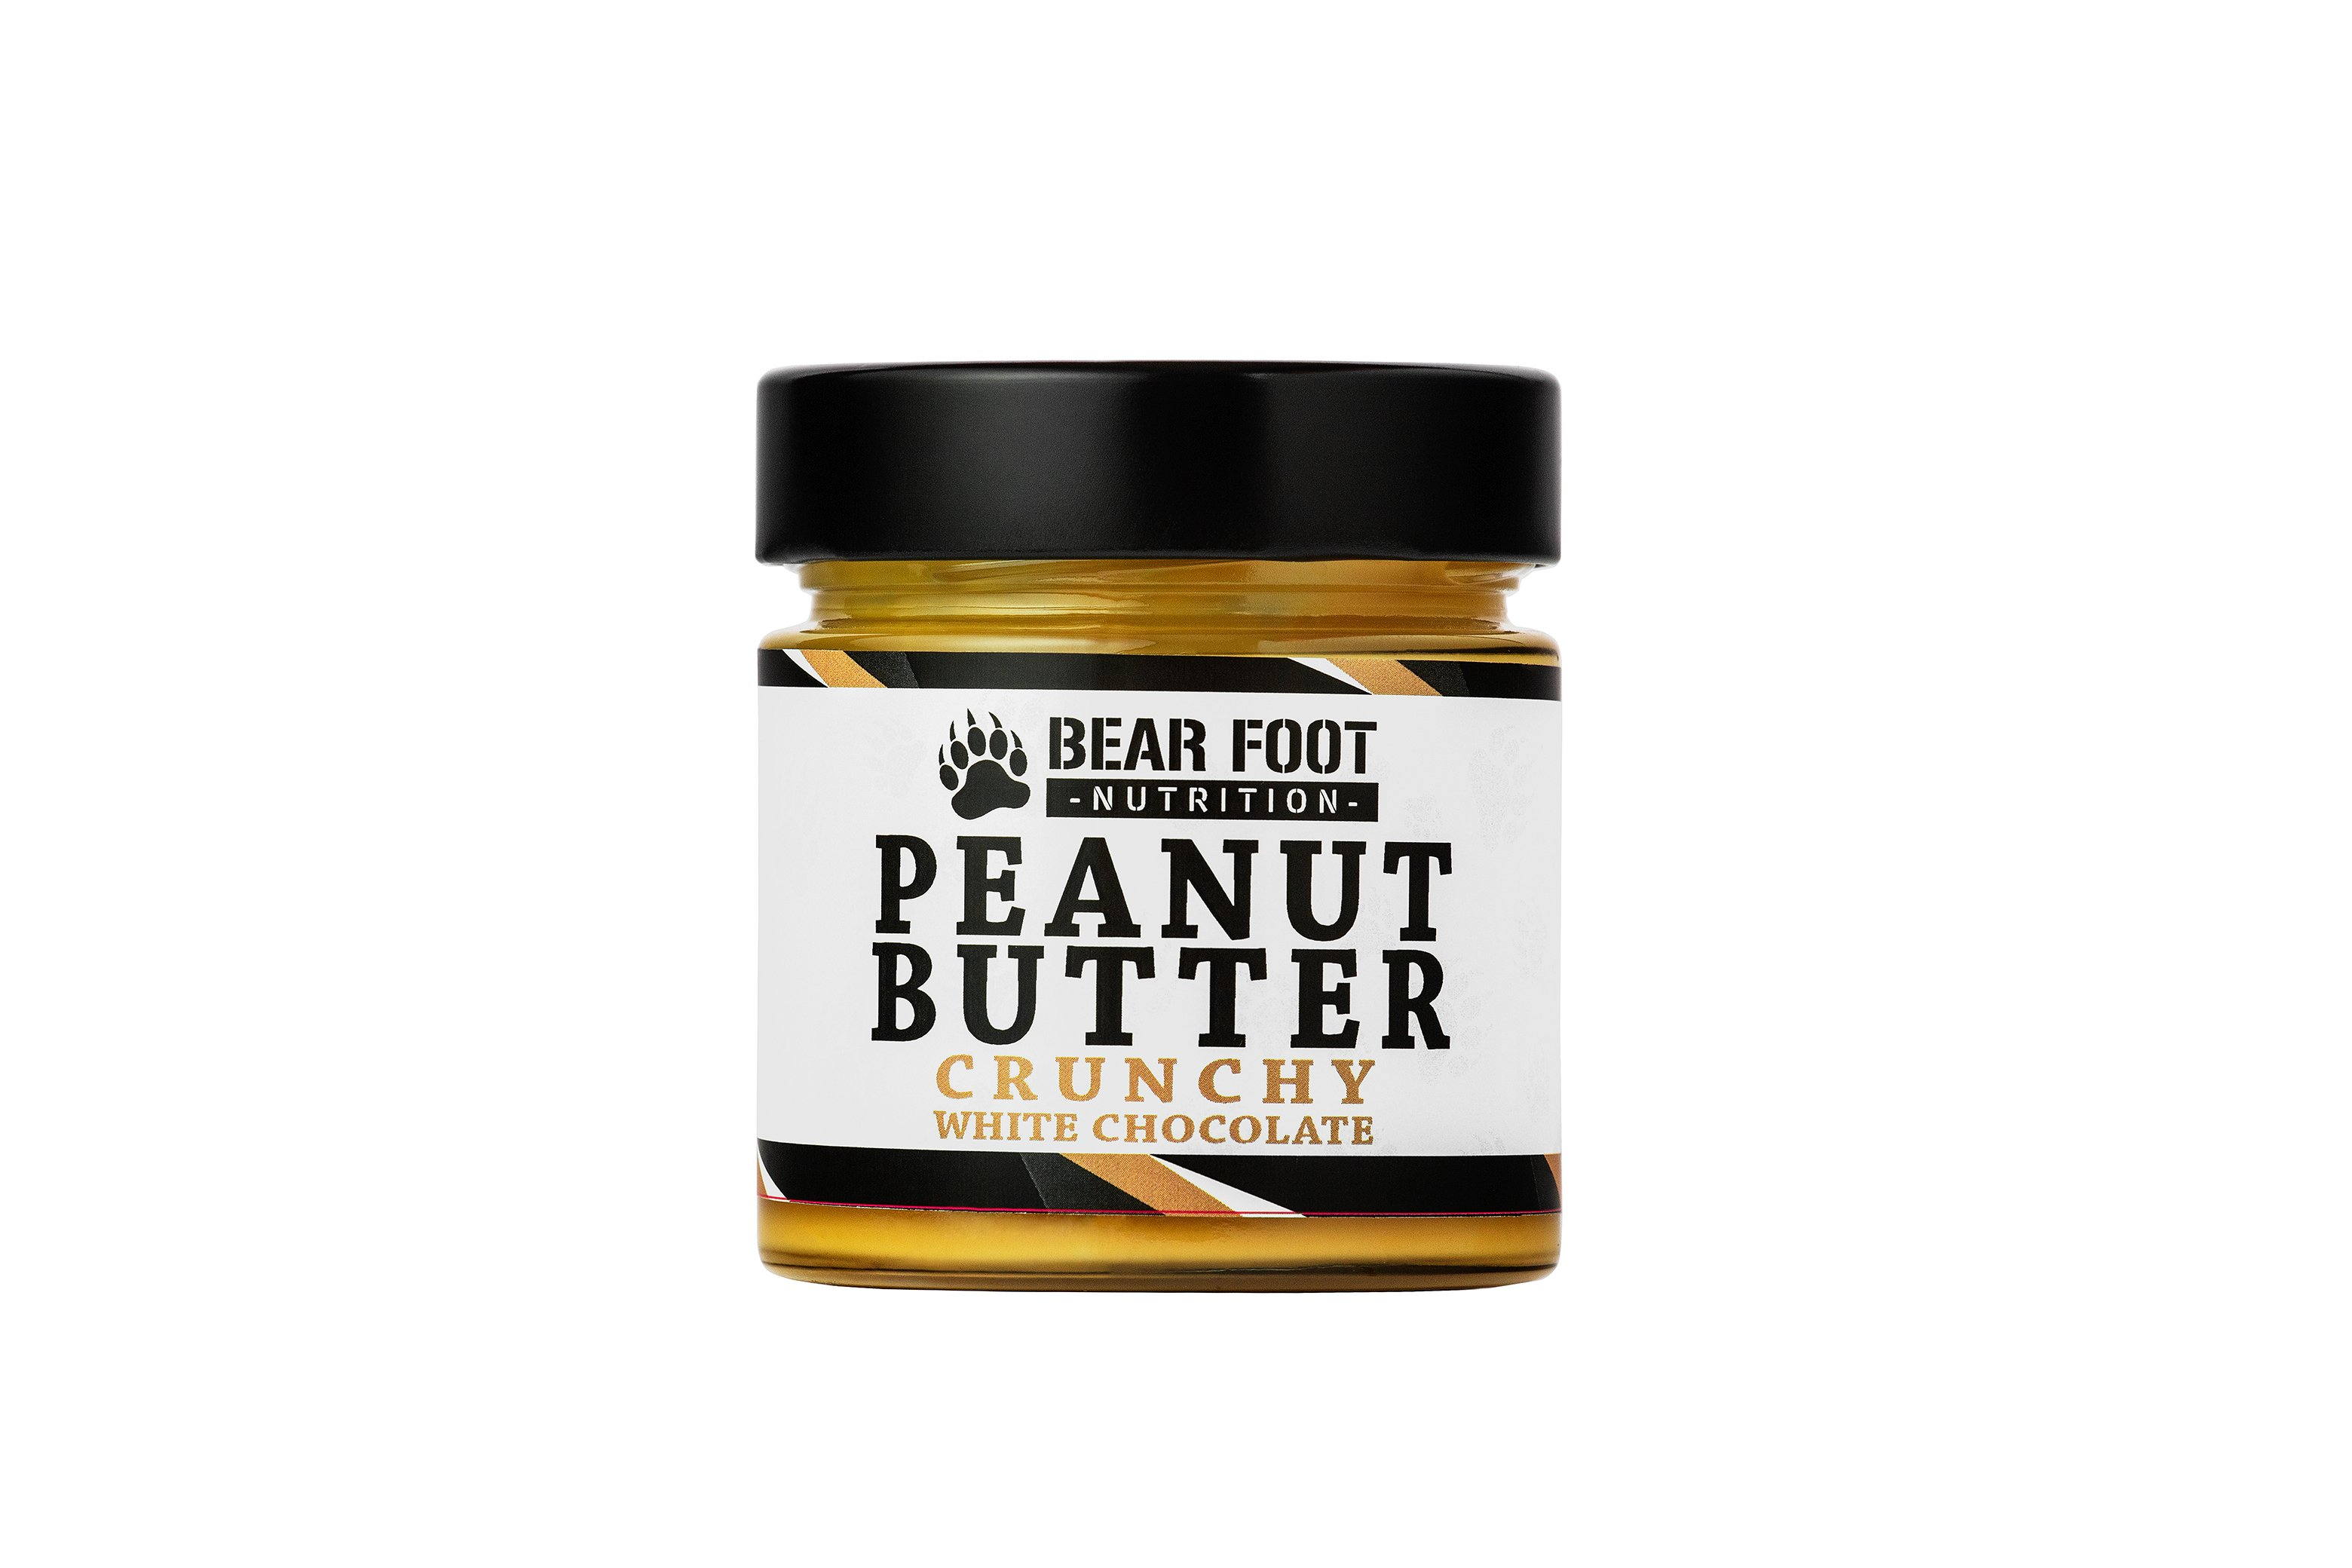 Bear Foot Peanut Butter, Crunchy White Chocolate, 250g